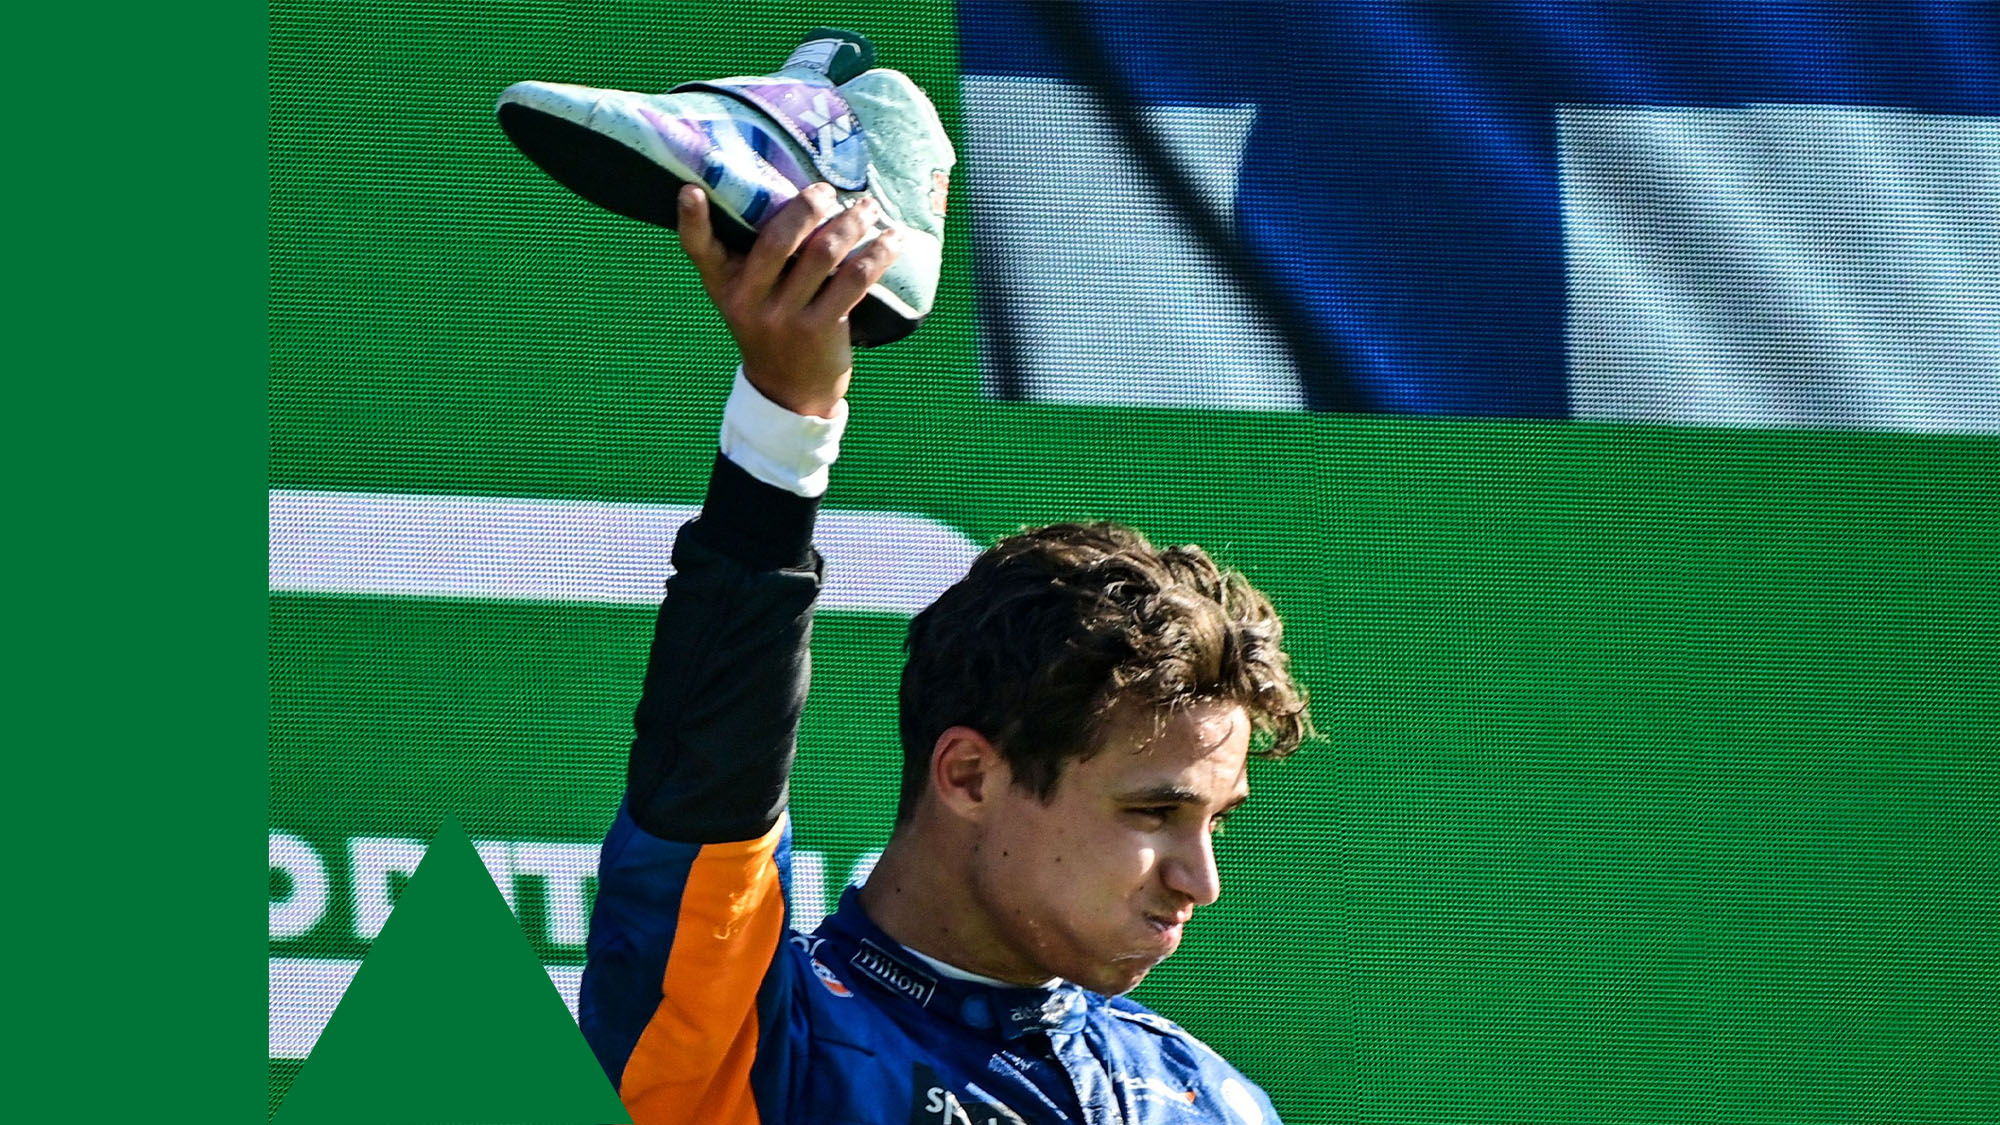 Second-placed McLaren's British driver Lando Norris drinks out of a shoe as he celebrates on the podium after the Italian Formula One Grand Prix at the Autodromo Nazionale circuit in Monza, on September 12, 2021. (Photo by ANDREJ ISAKOVIC / AFP) (Photo by ANDREJ ISAKOVIC/AFP via Getty Images)